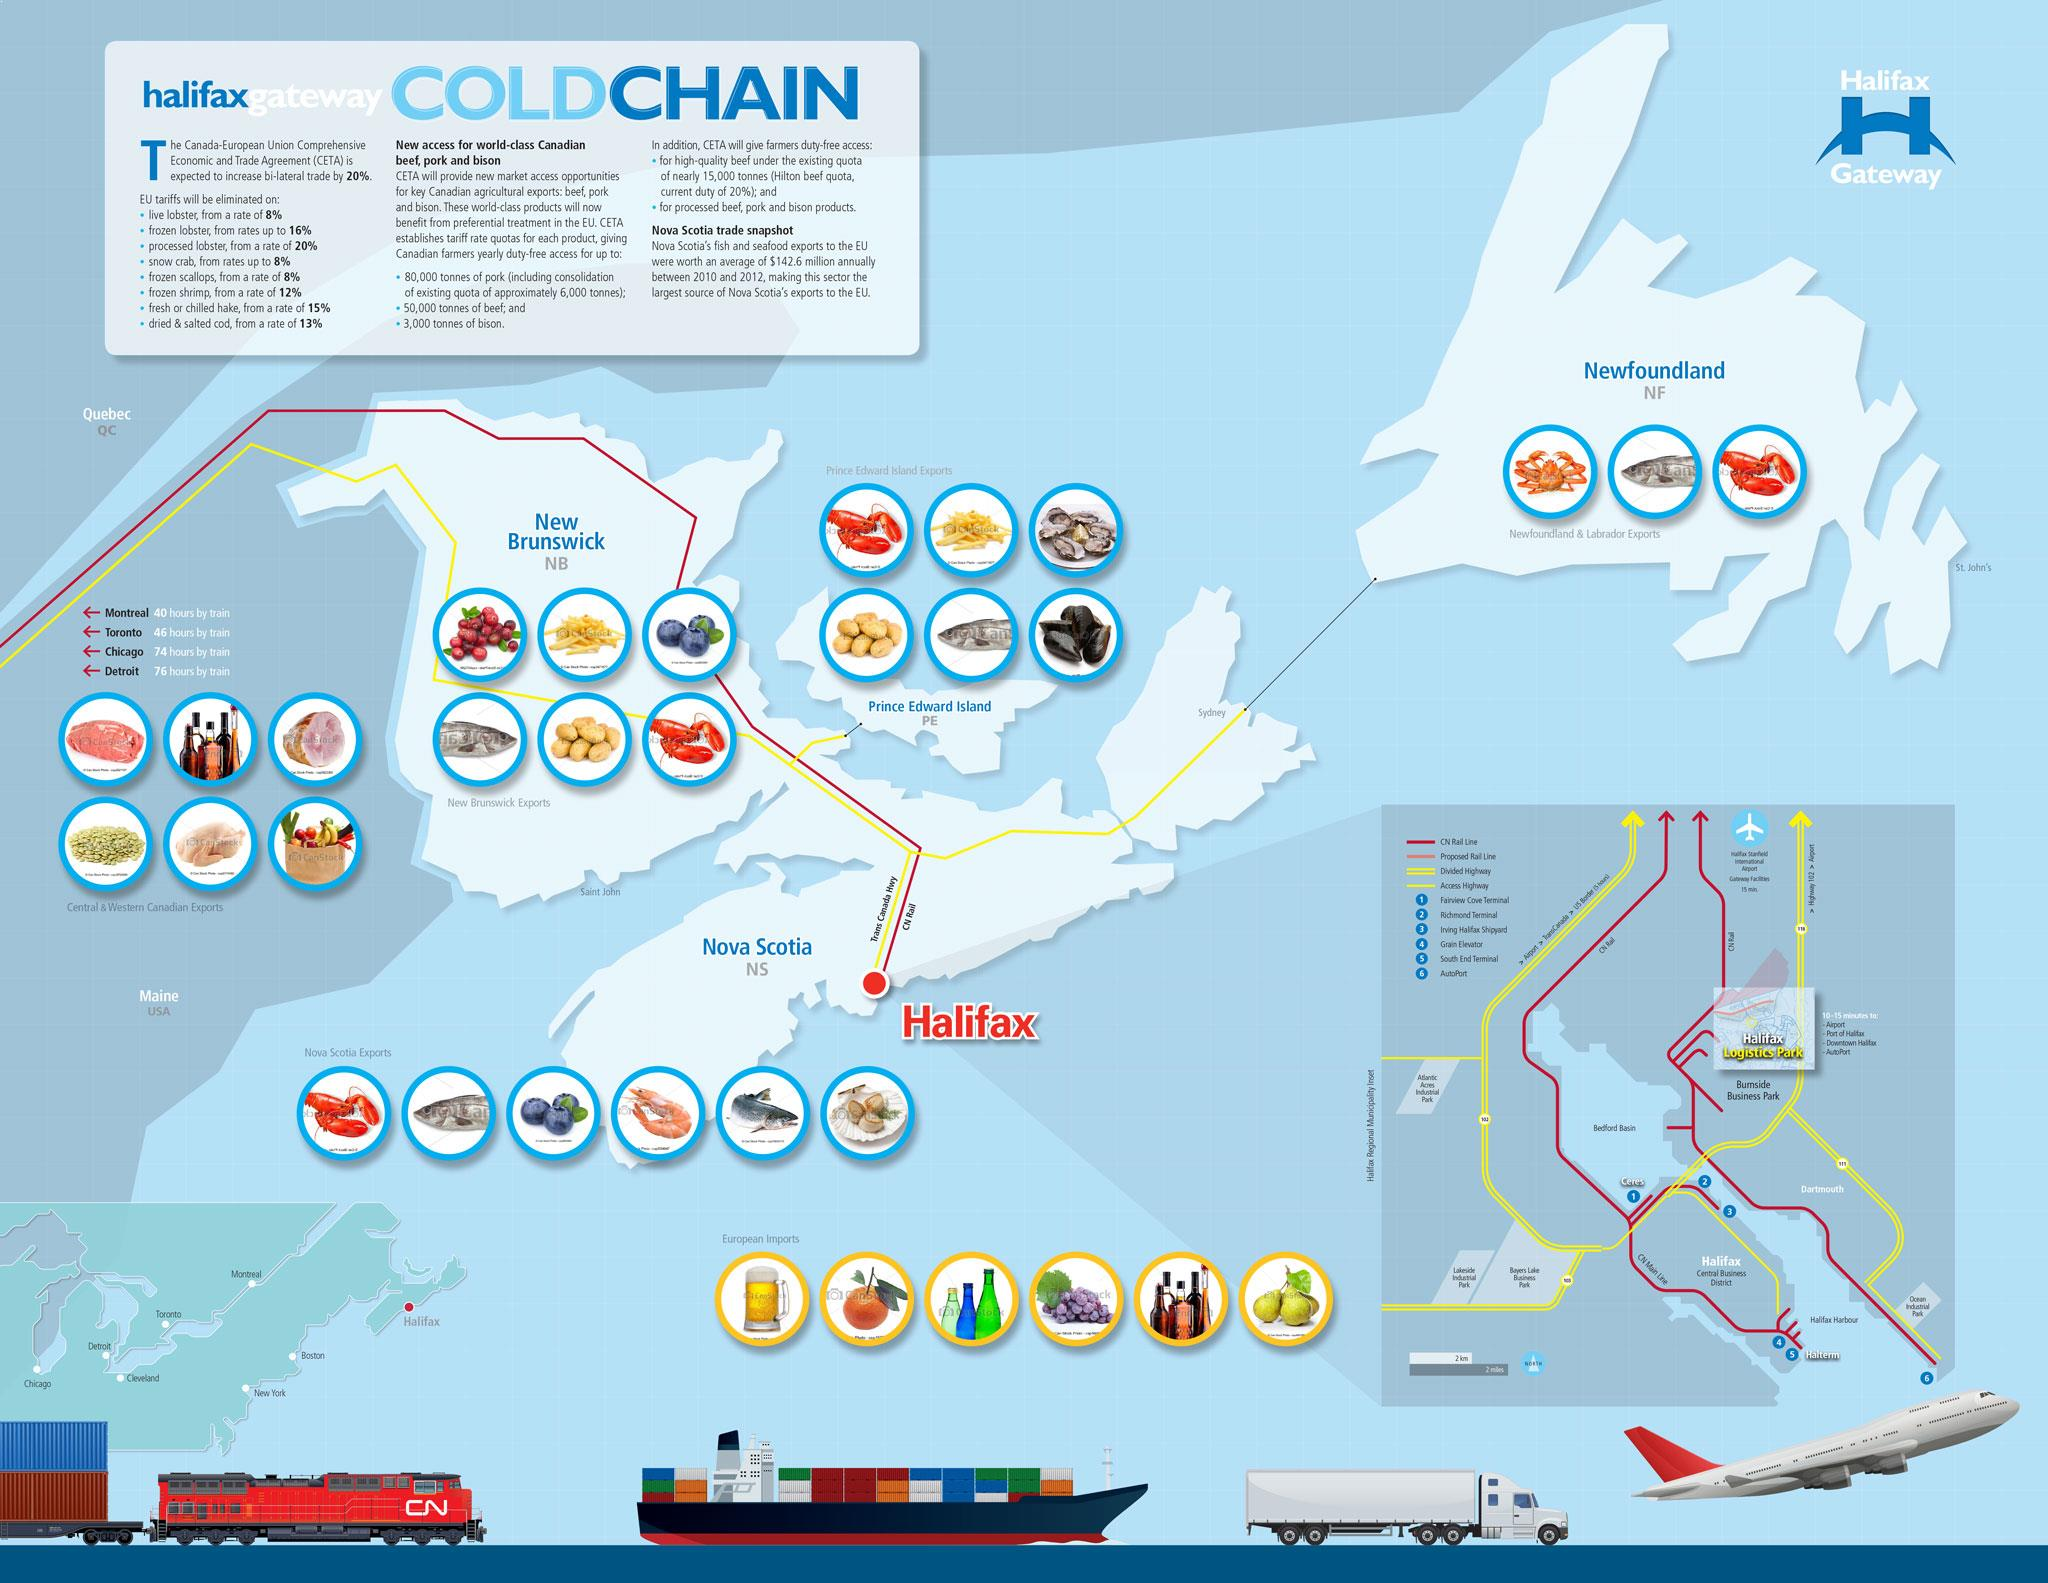 Halifax Gateway Cold Chain plan depicting a map of Atlantic Canada and various imports and exports